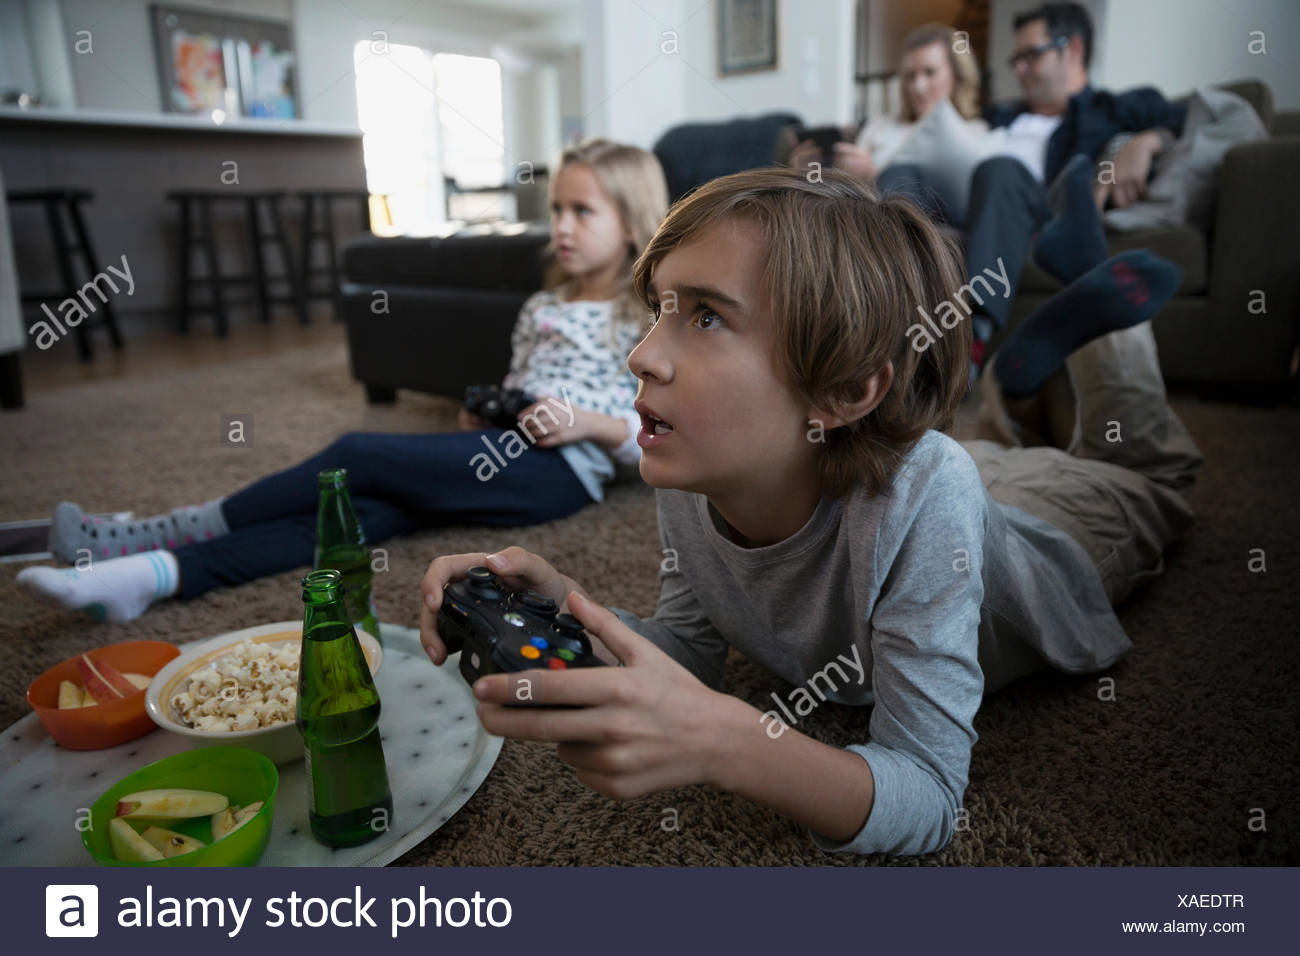 Boy with snacks playing video game living room - Stock Image